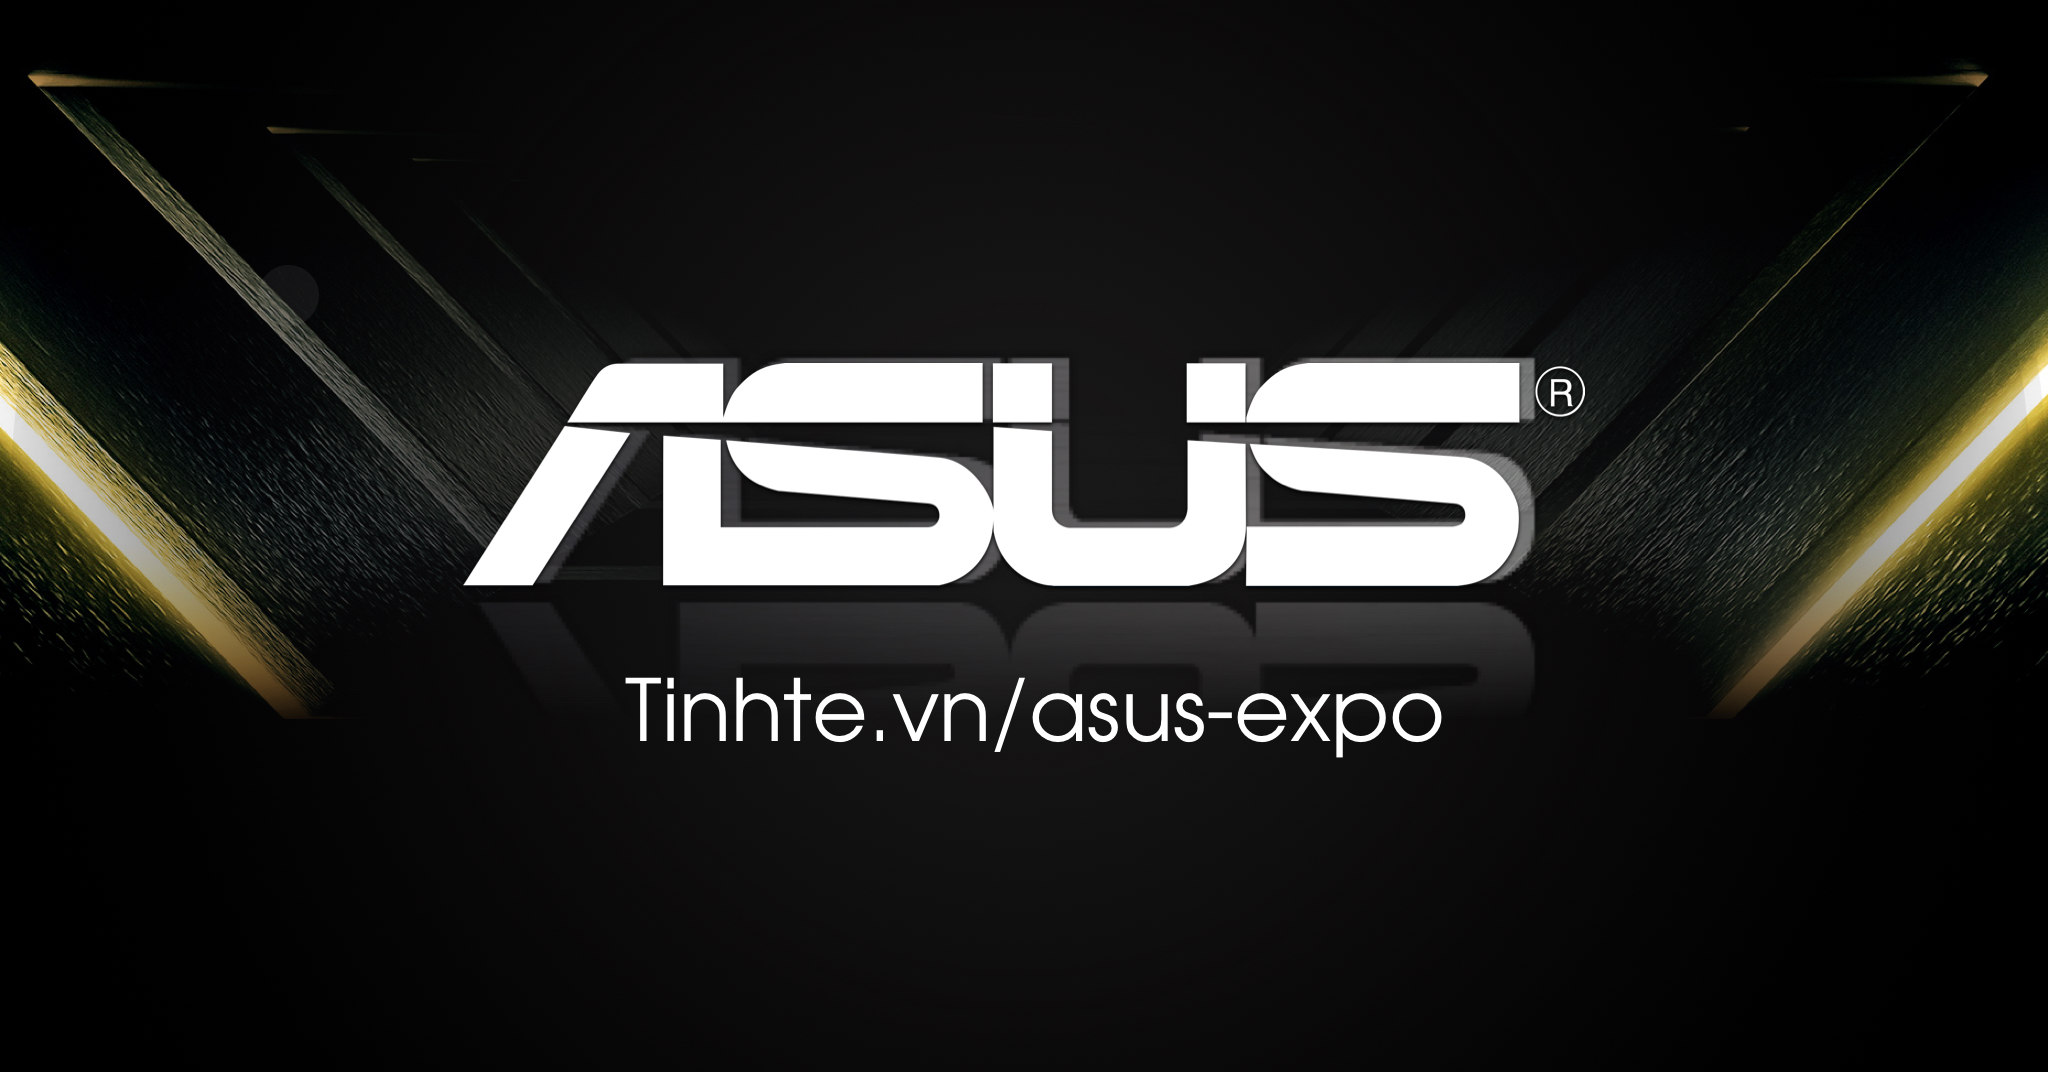 Asus Expo